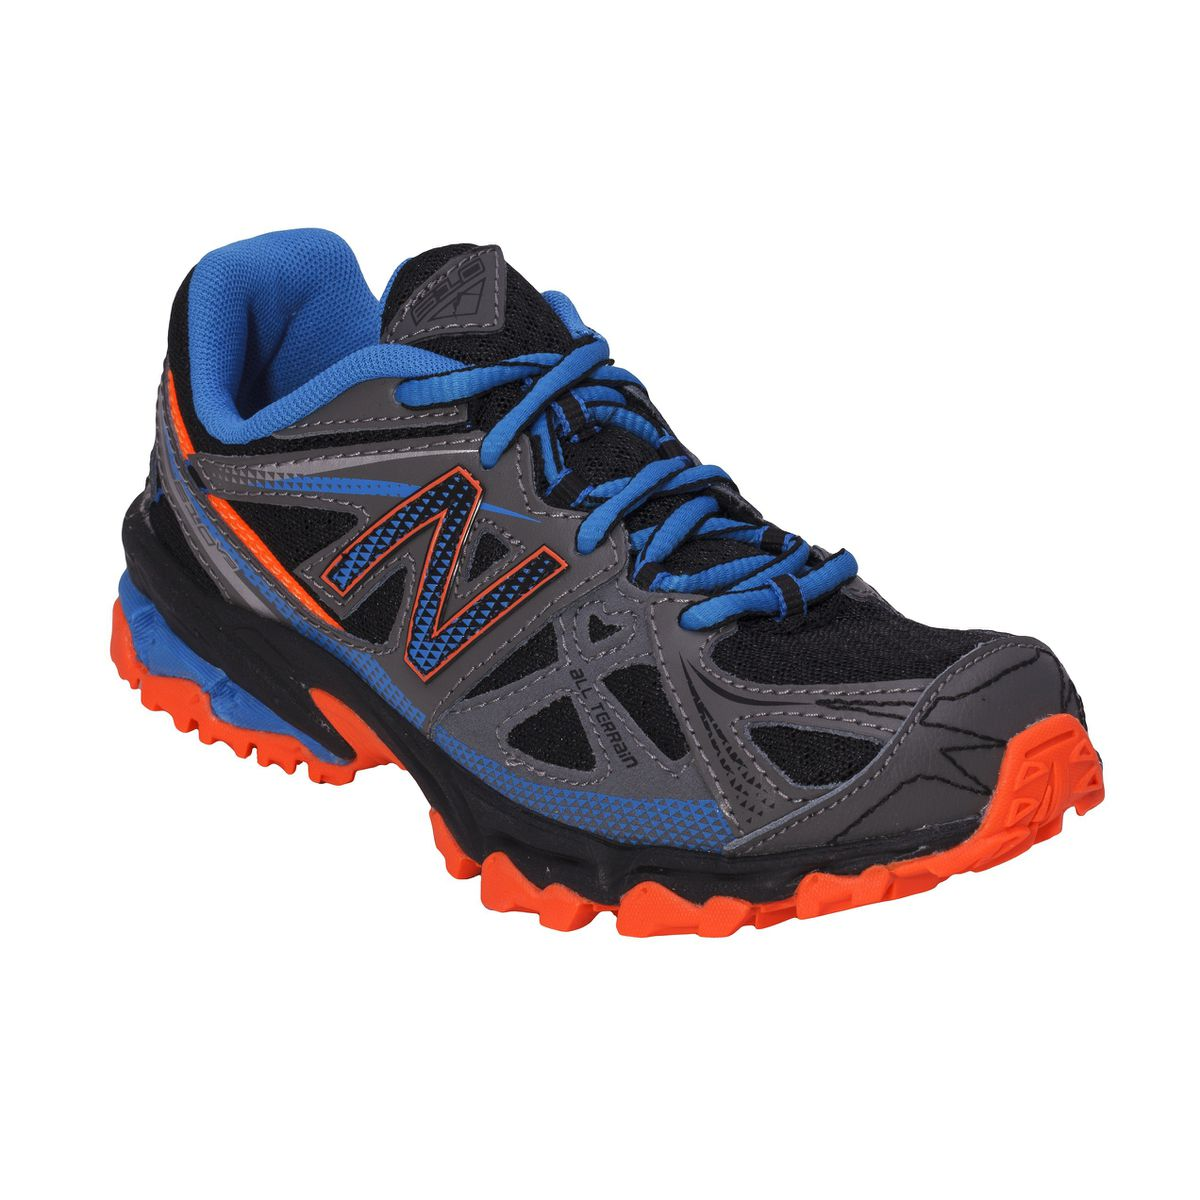 Picking A Trail Running Shoe